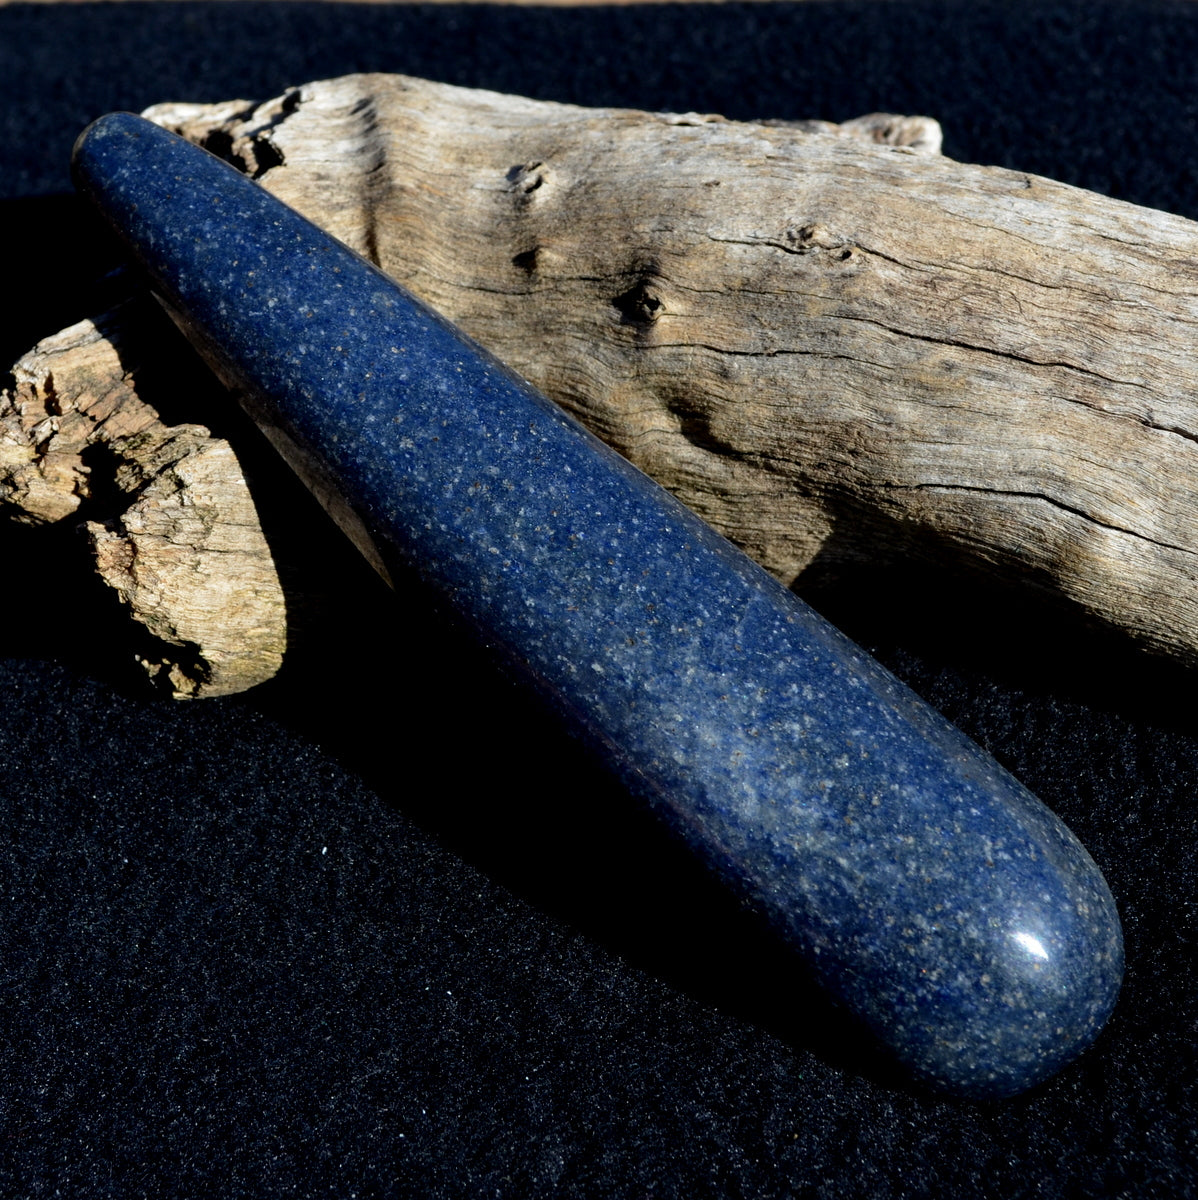 Lazulite Rare Polished Large Massage Wand - Insightful Calming Meditation - SHOP Now at Illiom Crystals - Afterpay Available